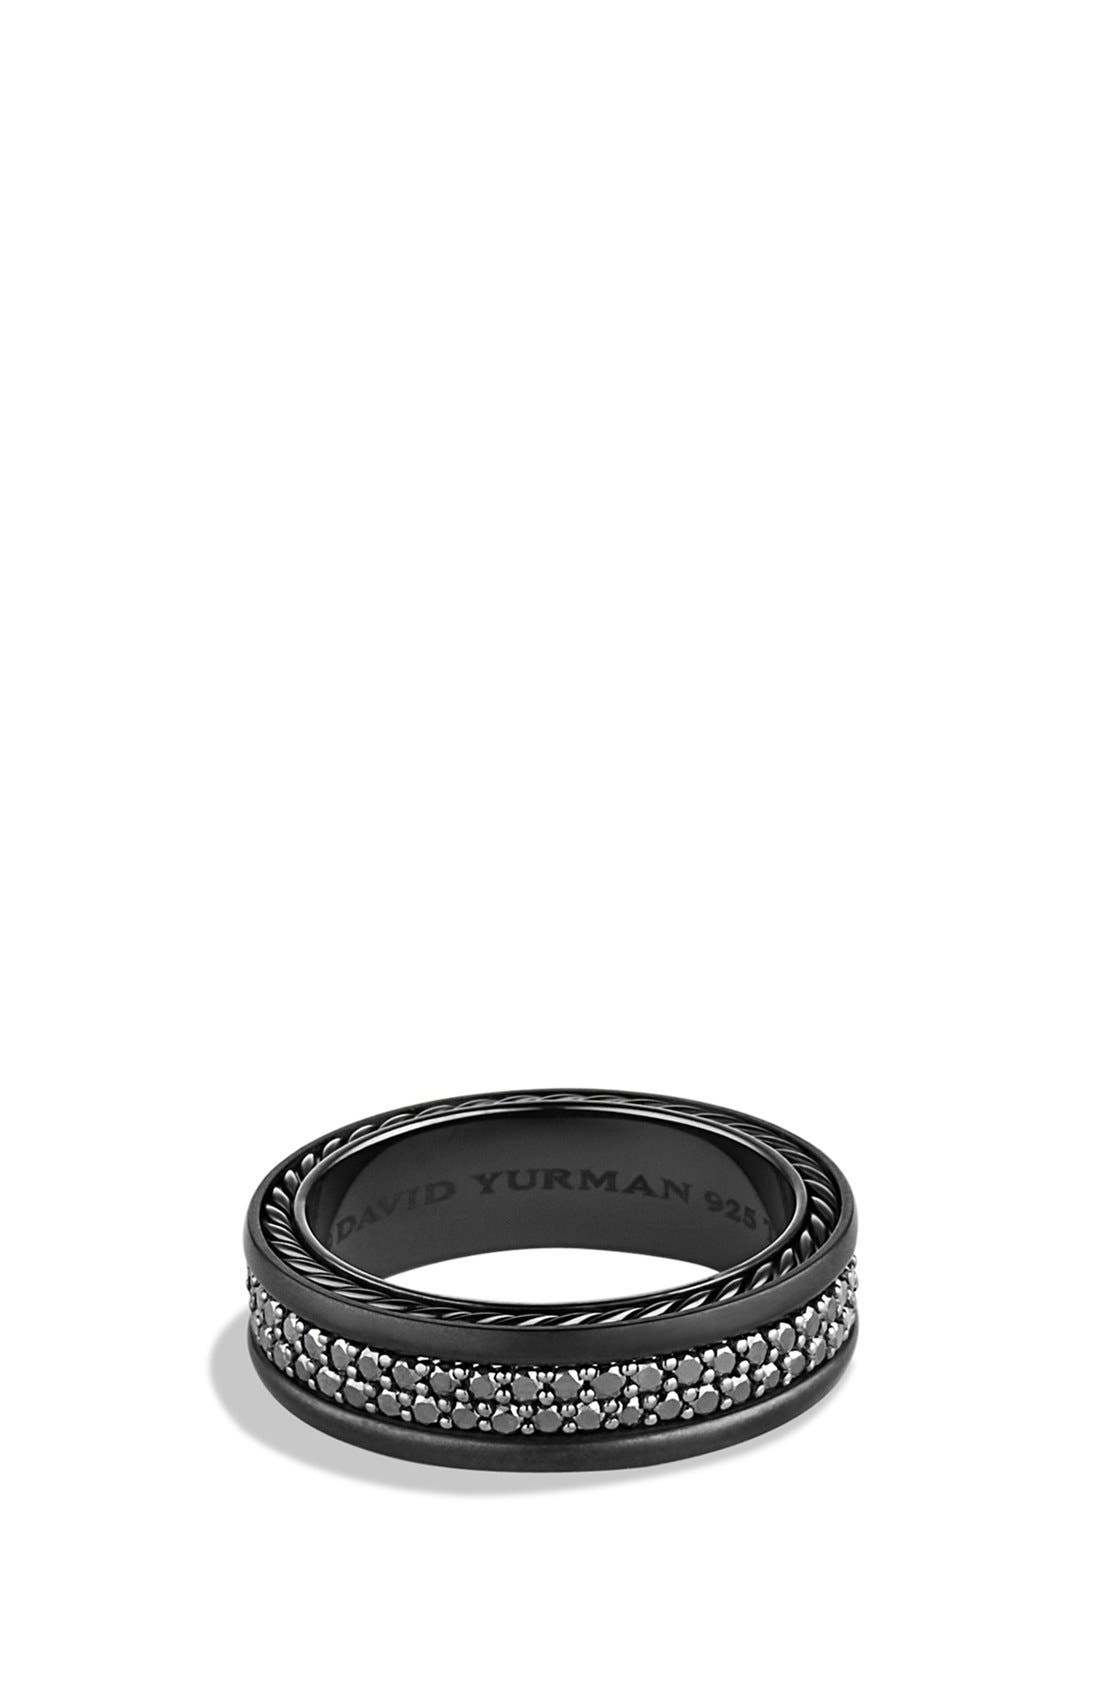 Alternate Image 1 Selected - David Yurman 'Streamline' Two-Row Band Ring with Gems & Black Titanium